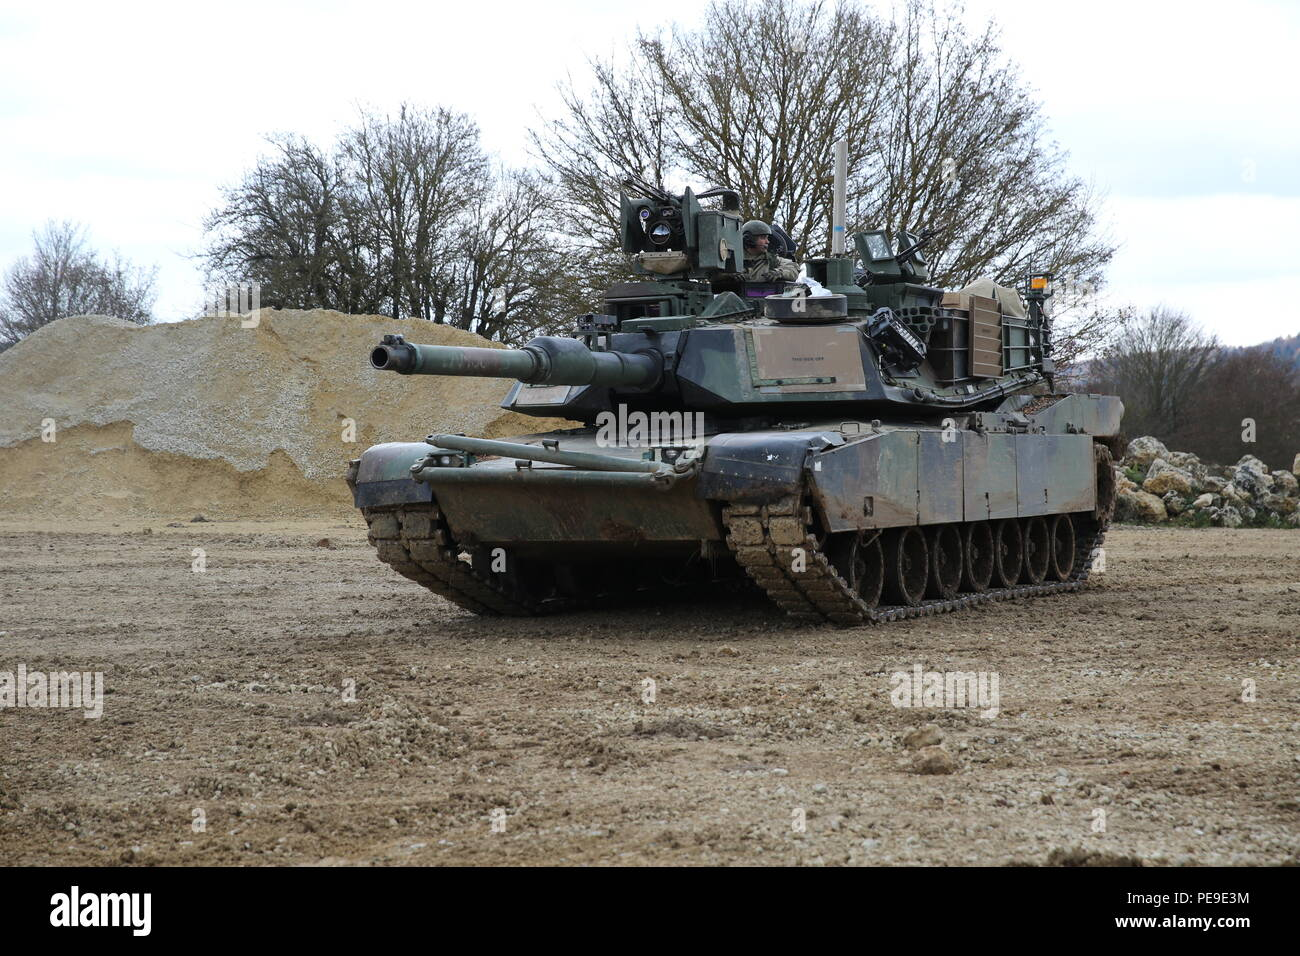 U.S. Soldiers of Bravo Company, 10th Brigade Engineer Battalion, 1st Armored Brigade, 3rd Infantry Division provide security in an M1A2 Abrams tank while conducting breach operations during exercise Combined Resolve V at the U.S. Army's Joint Multinational Readiness Center in Hohenfels, Germany, Nov. 9, 2015. Exercise Combined Resolve V is designed to exercise the U.S. Army's regionally allocated force to the U.S. European Command area of responsibility with multinational training at all echelons. Approximately 4,600 participants from 13 NATO and European partner nations will participate. The  - Stock Image